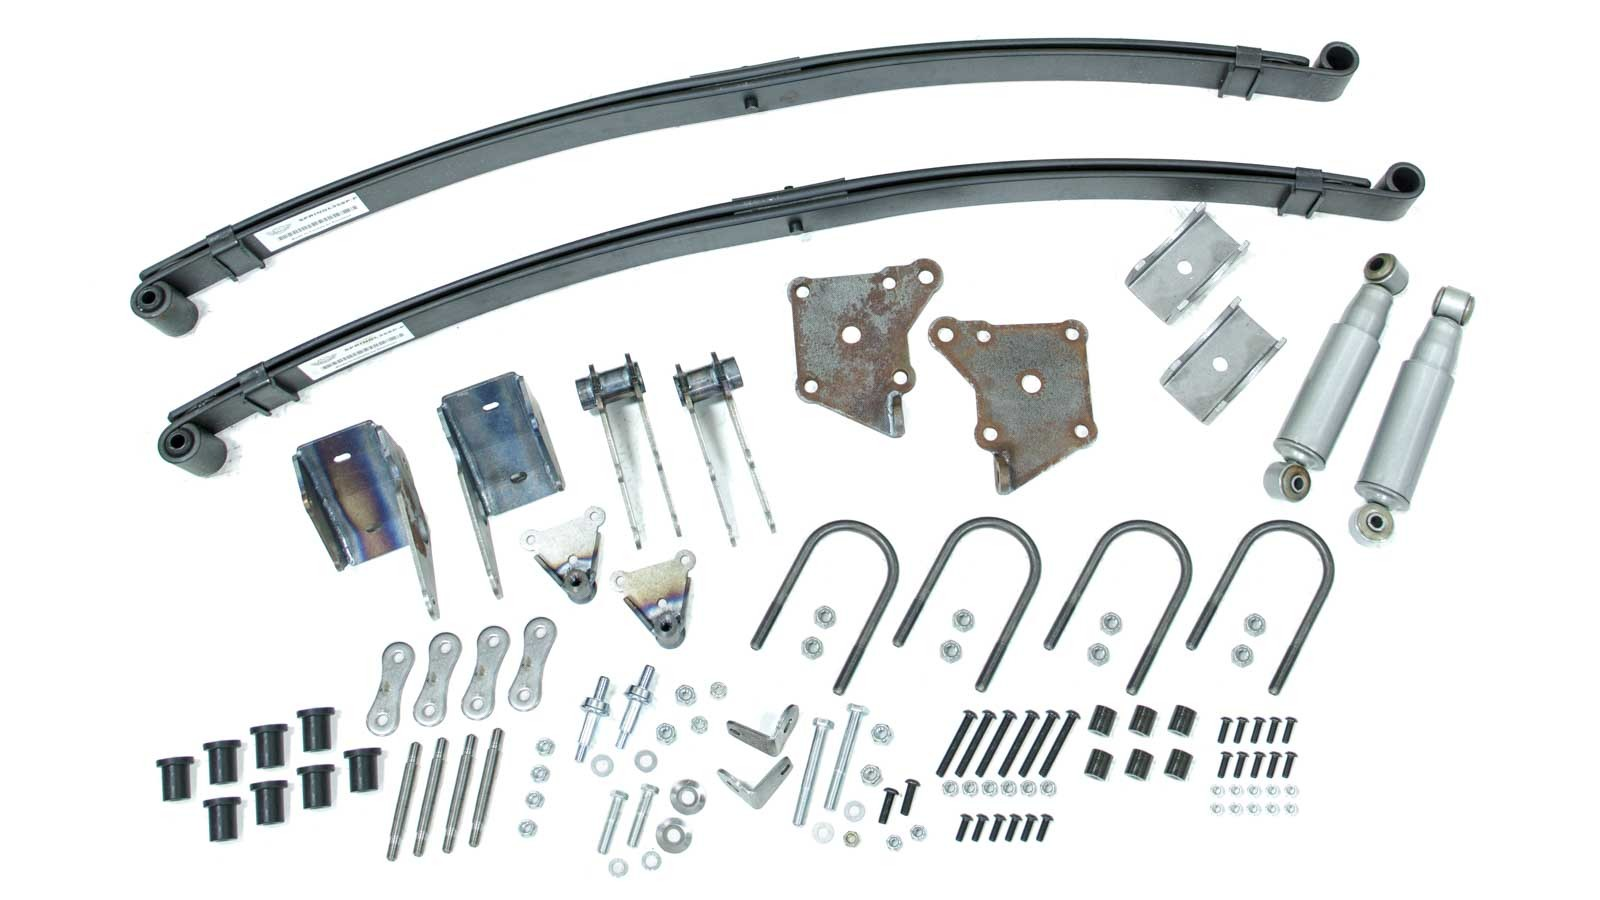 Total Cost Involved Eng. 35-48 Ford Rear Leaf Spring Kit